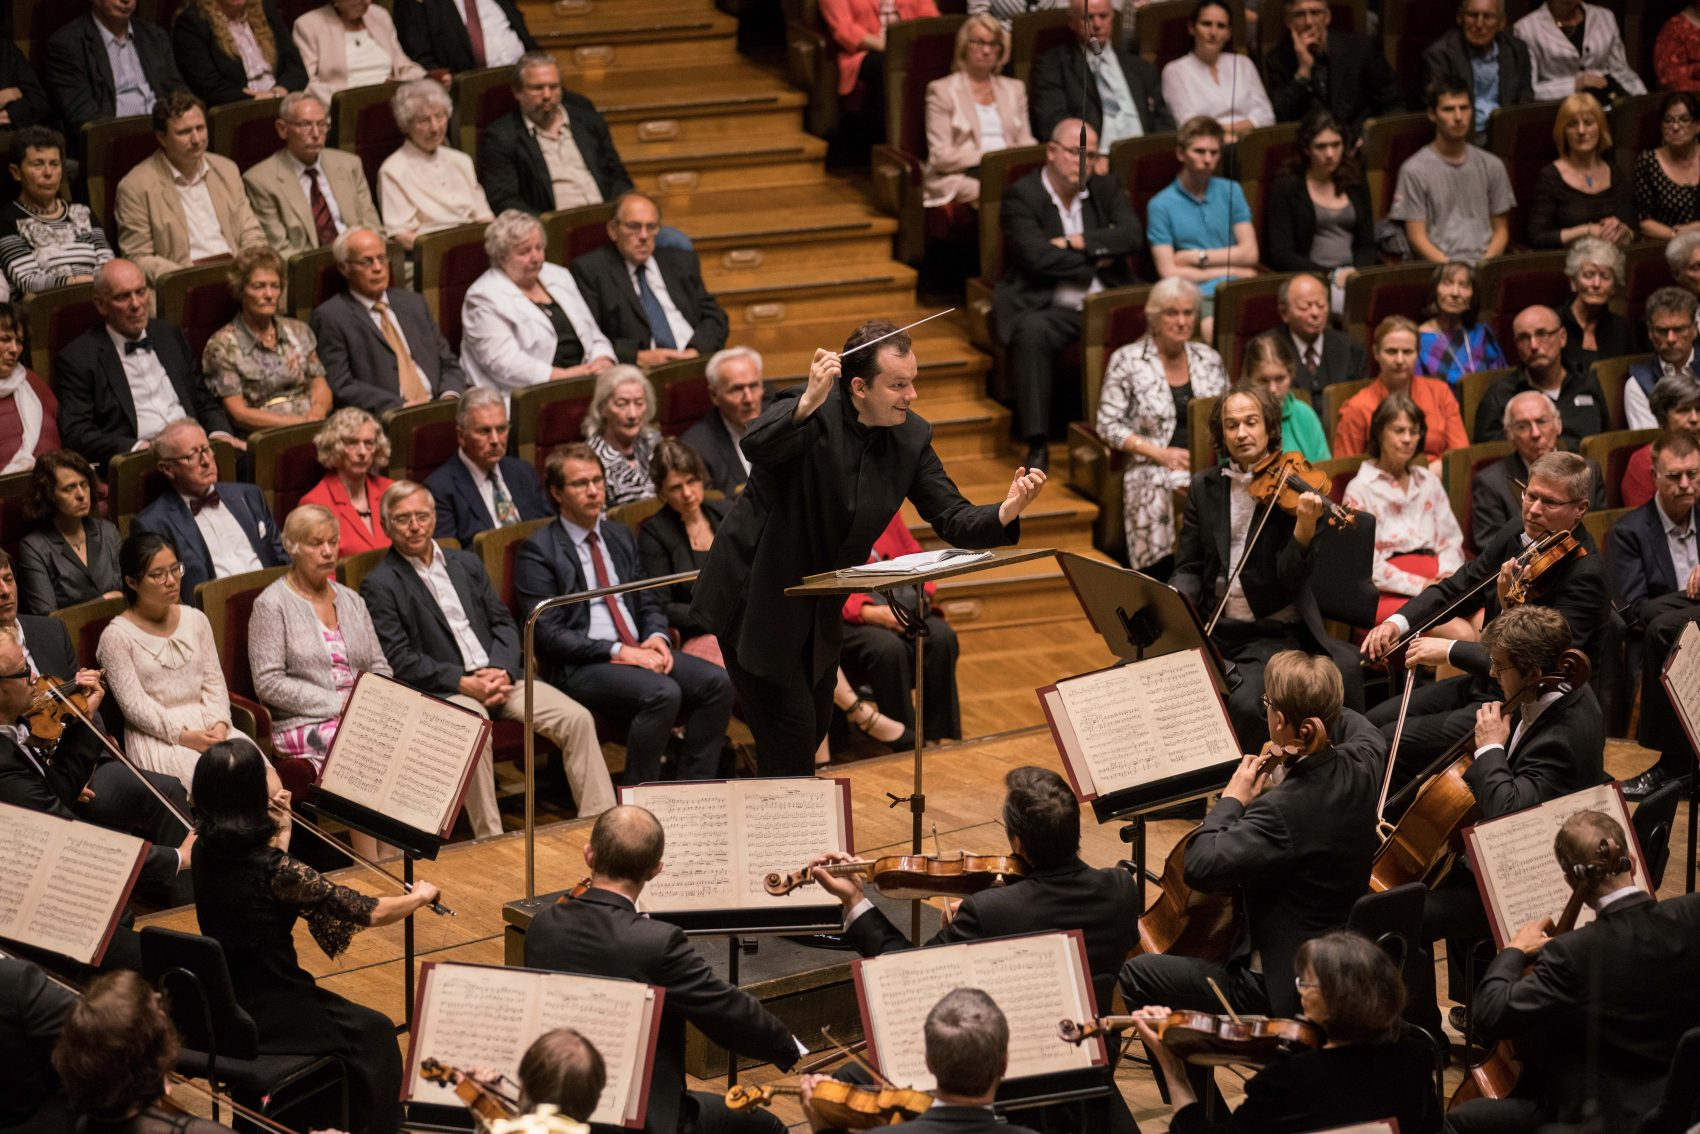 Andris Nelsons conducts the Gewandhaus Orchestra in Leipzig. (Courtesy Marco Borggreve)